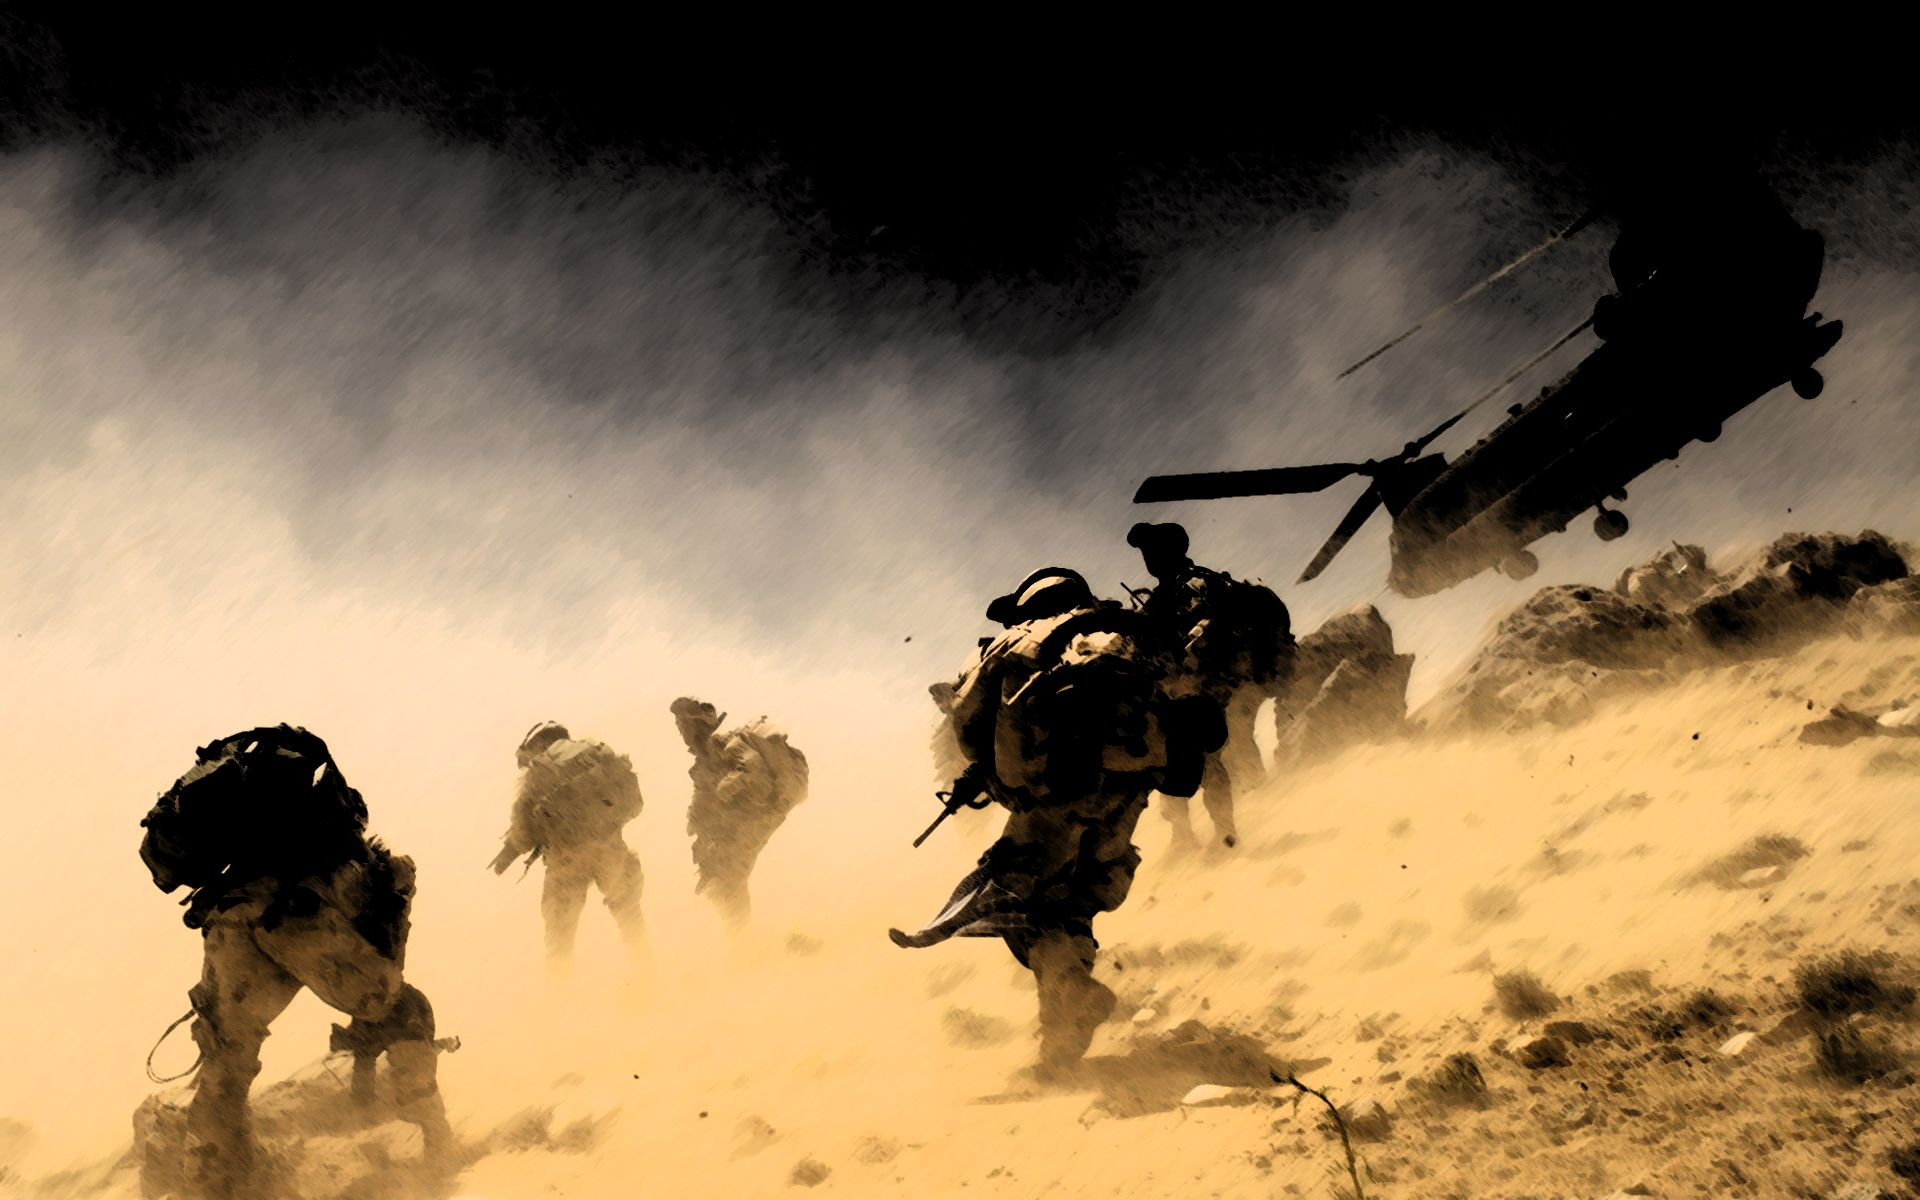 HD Army Wallpapers and Background Images For Download